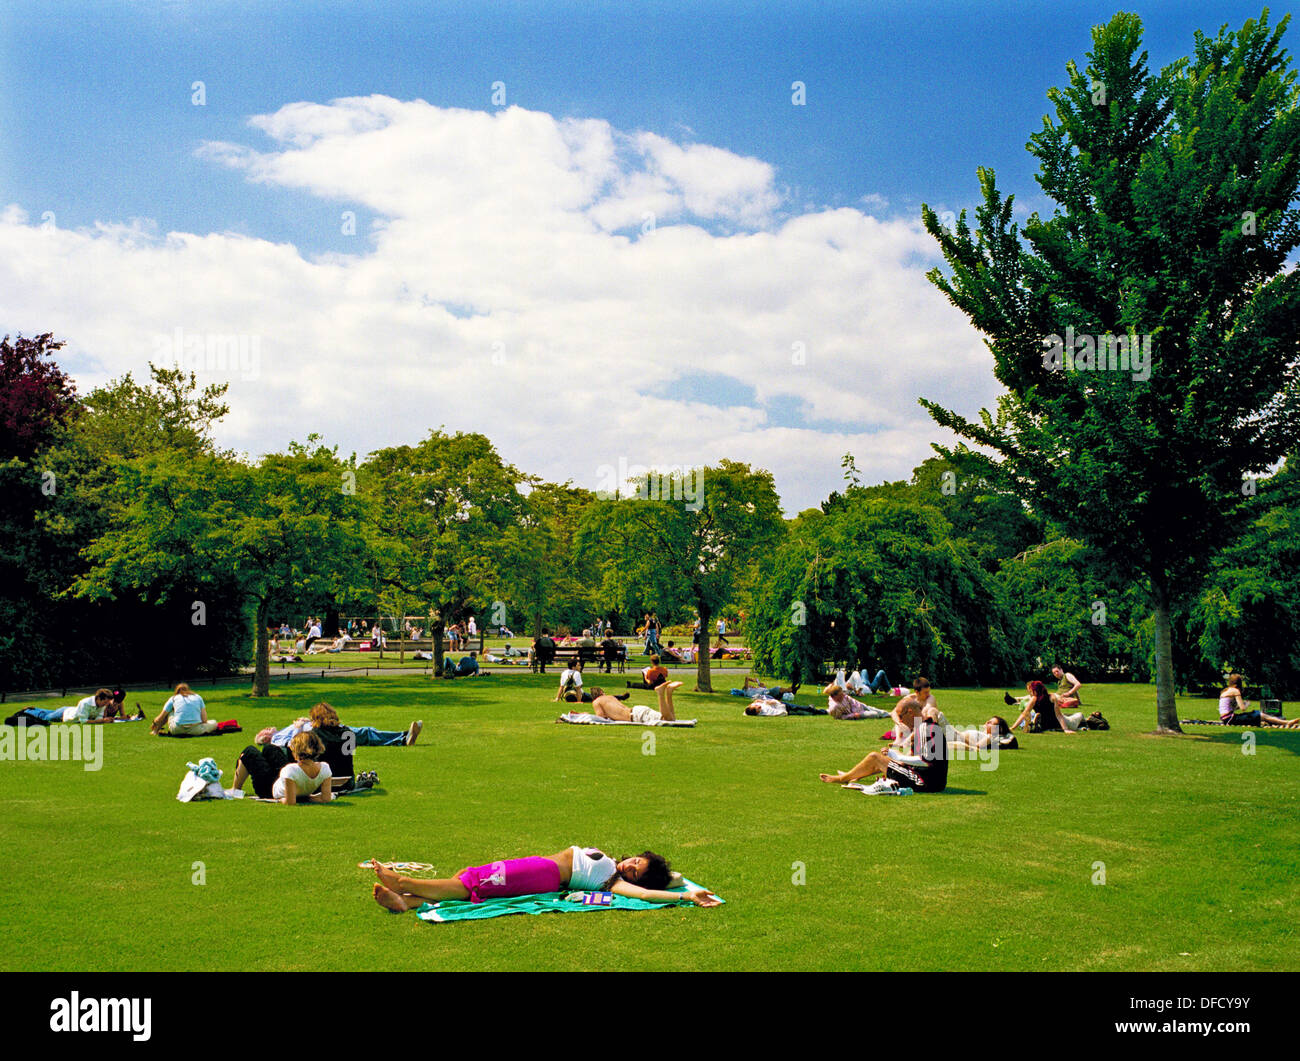 On a hot summer day Saint Stephen's Green in the center of Dublin, Ireland is a place to relax and cool off - Dublin, Ireland - Stock Image